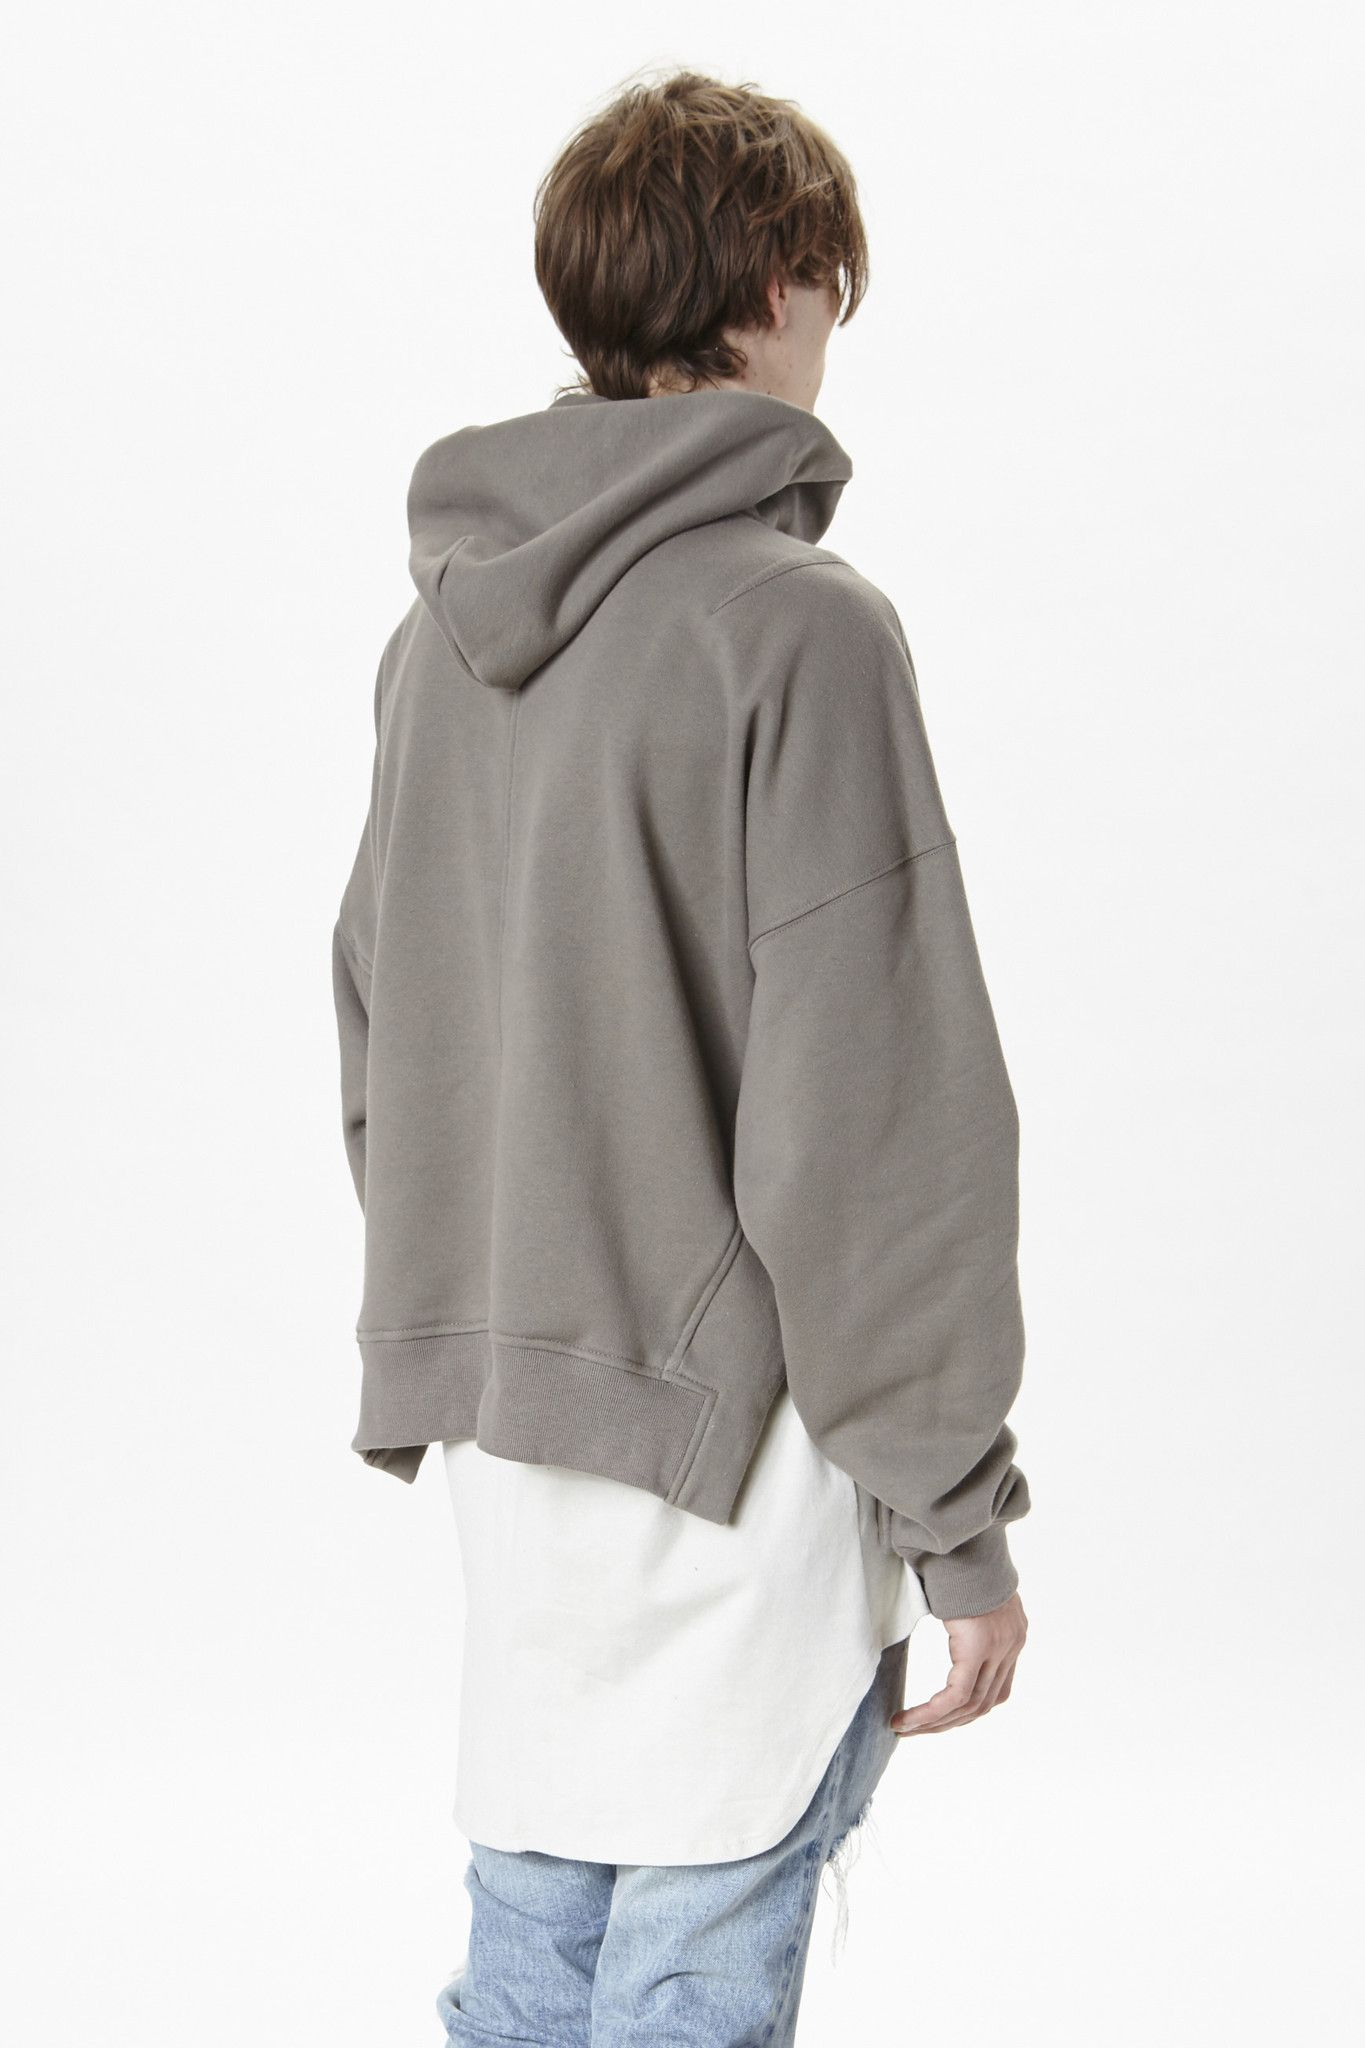 4d89405ca2c9 The Everyday Hoodie | Fear of God | Him | Clothes, Hoodies, Fashion